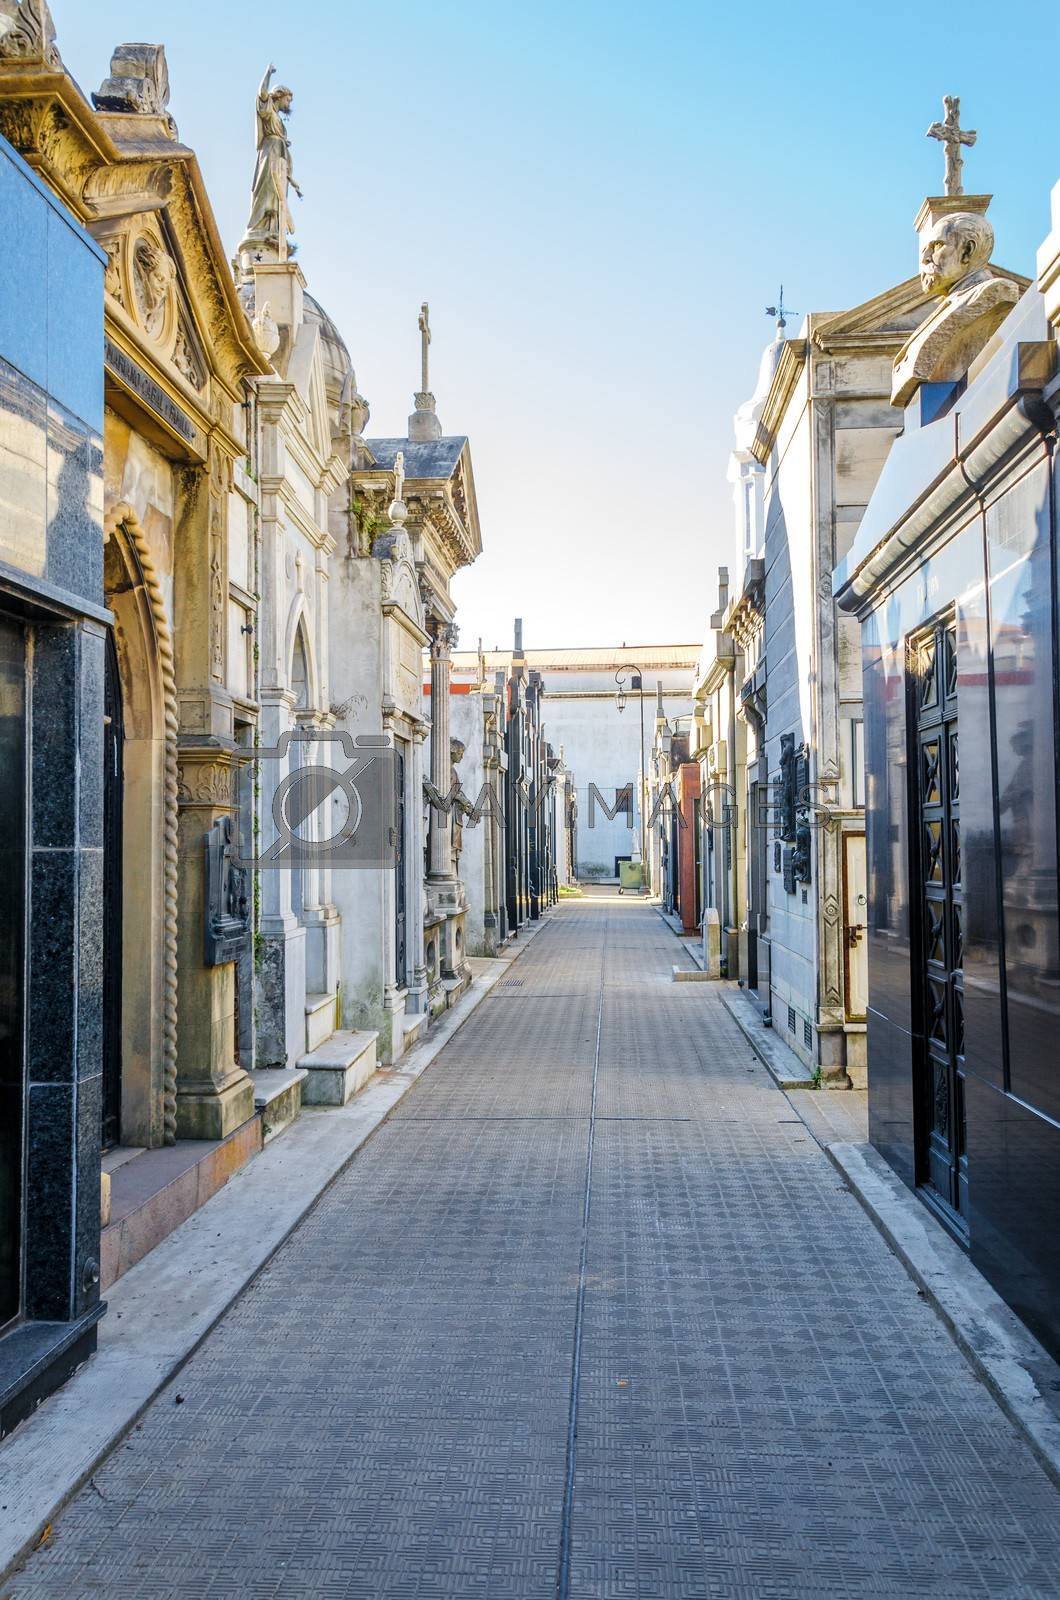 View of Recoleta Cemetery in Buenos Aires, Argentina